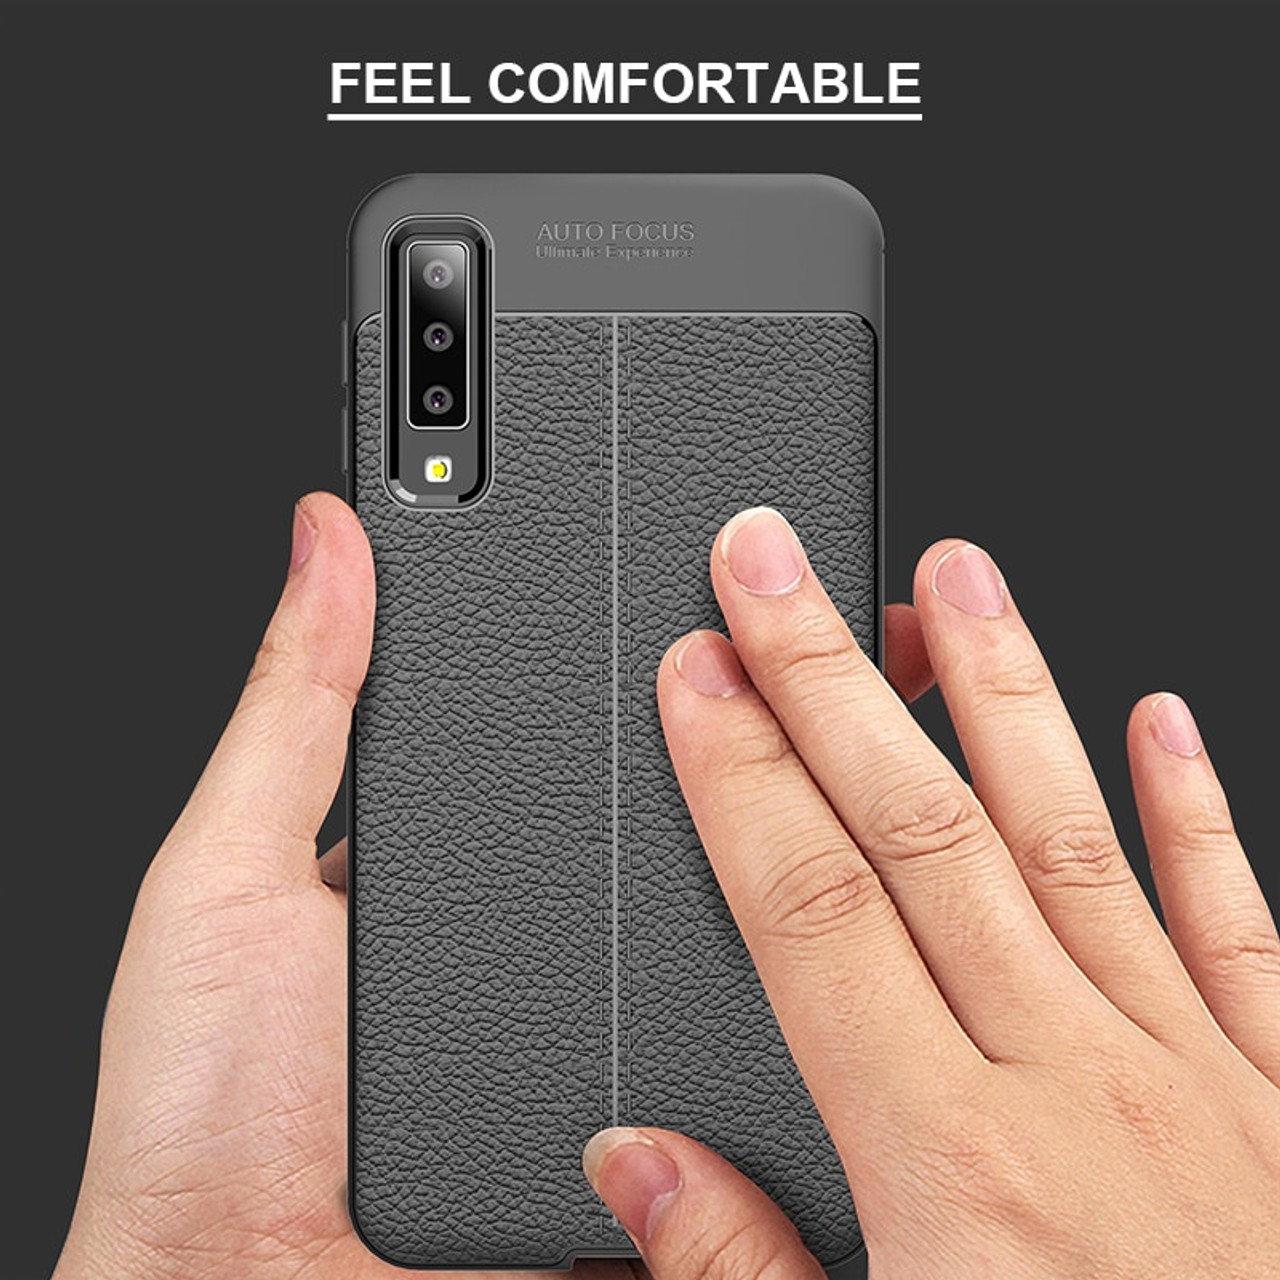 hot sale online 89193 4fe50 Phone Cases for Samsung Galaxy A7 2018 A750 Soft Carbon Fiber Leather TPU  Cover Case for Samsung A7 2018 Shockproof Armor Case